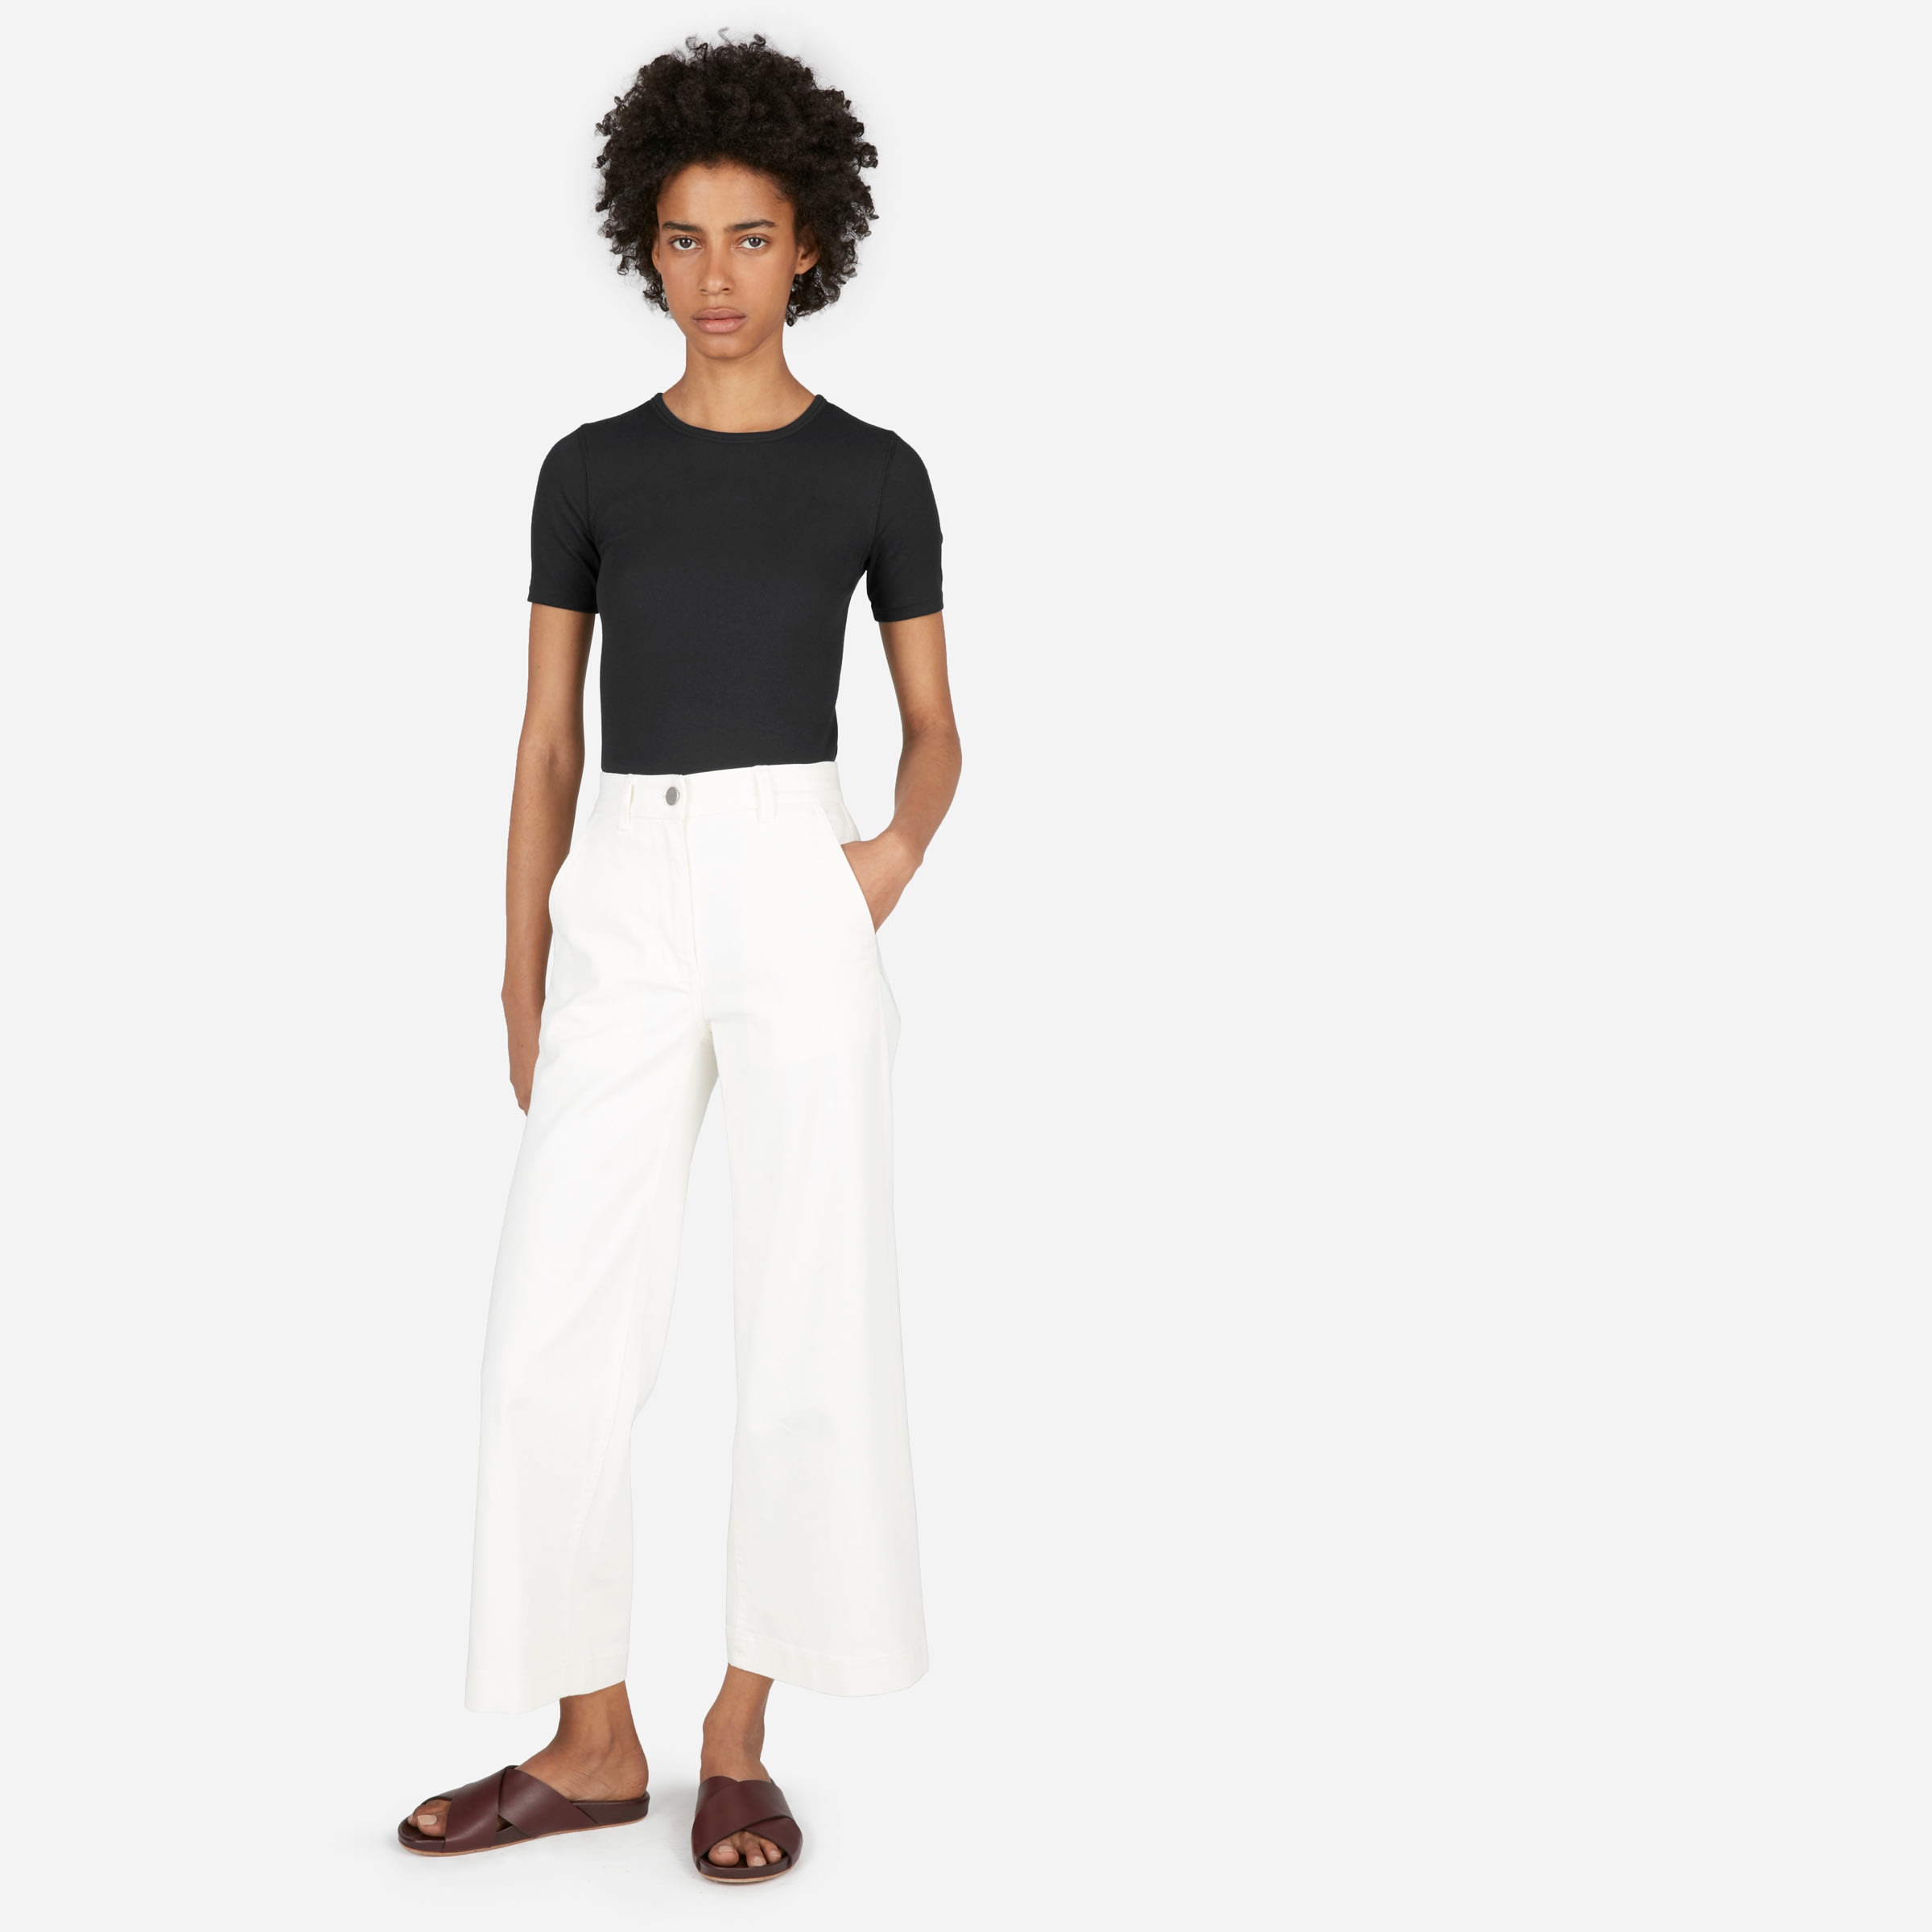 A woman in an black Everlane t-shirt and white pants stands against a white background.